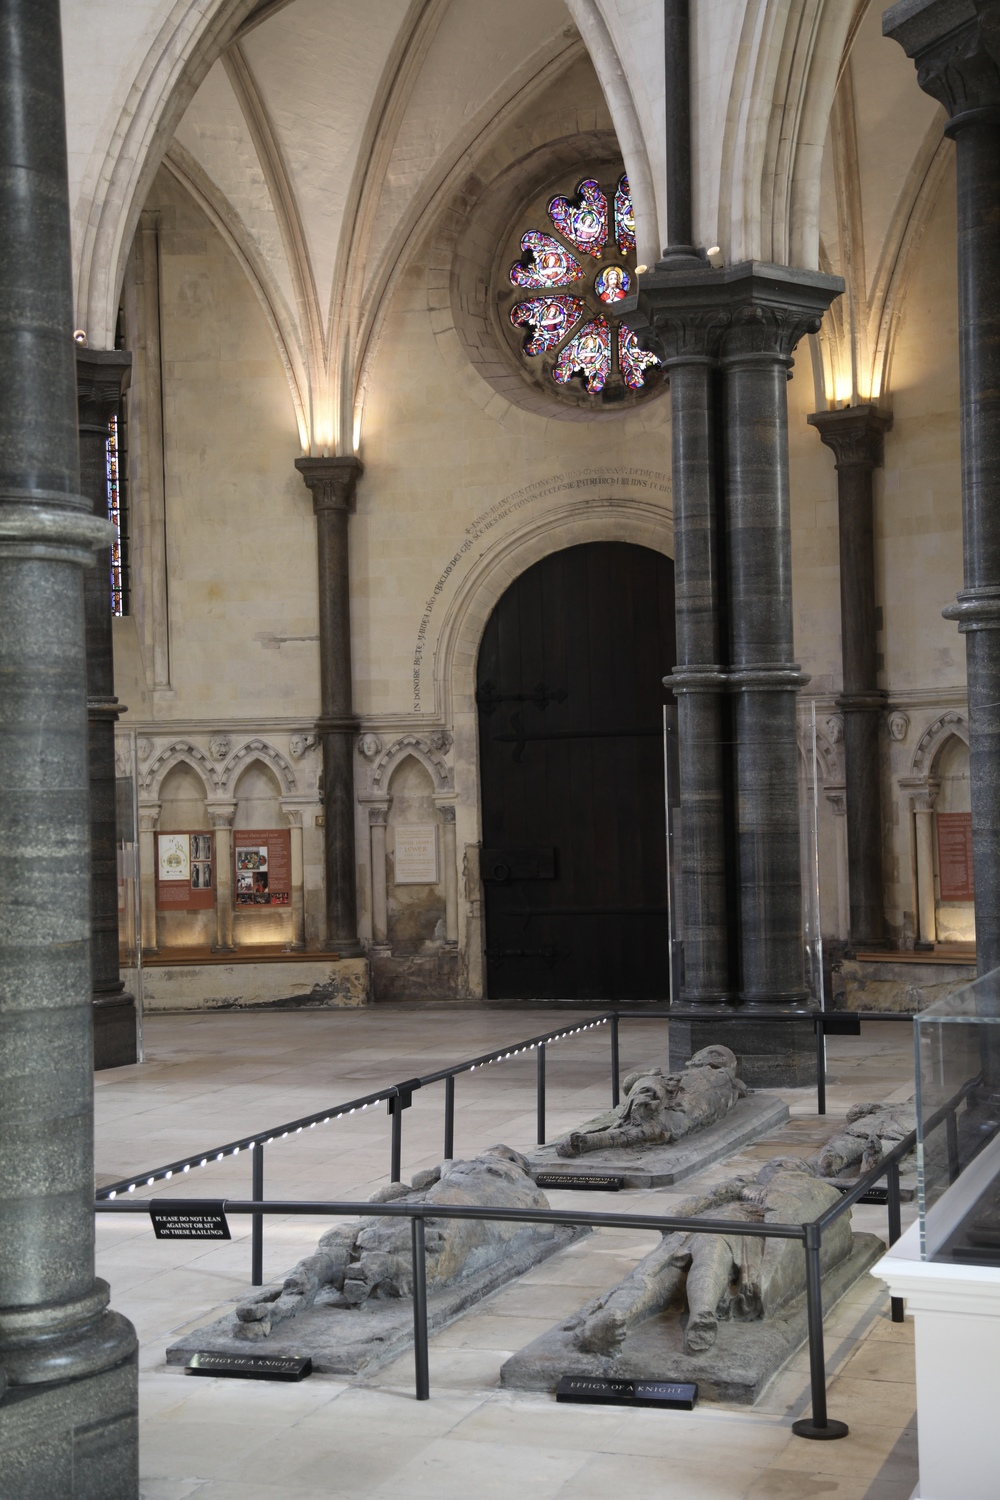 Effigies of knights under the circular tower of the Temple Church in London.